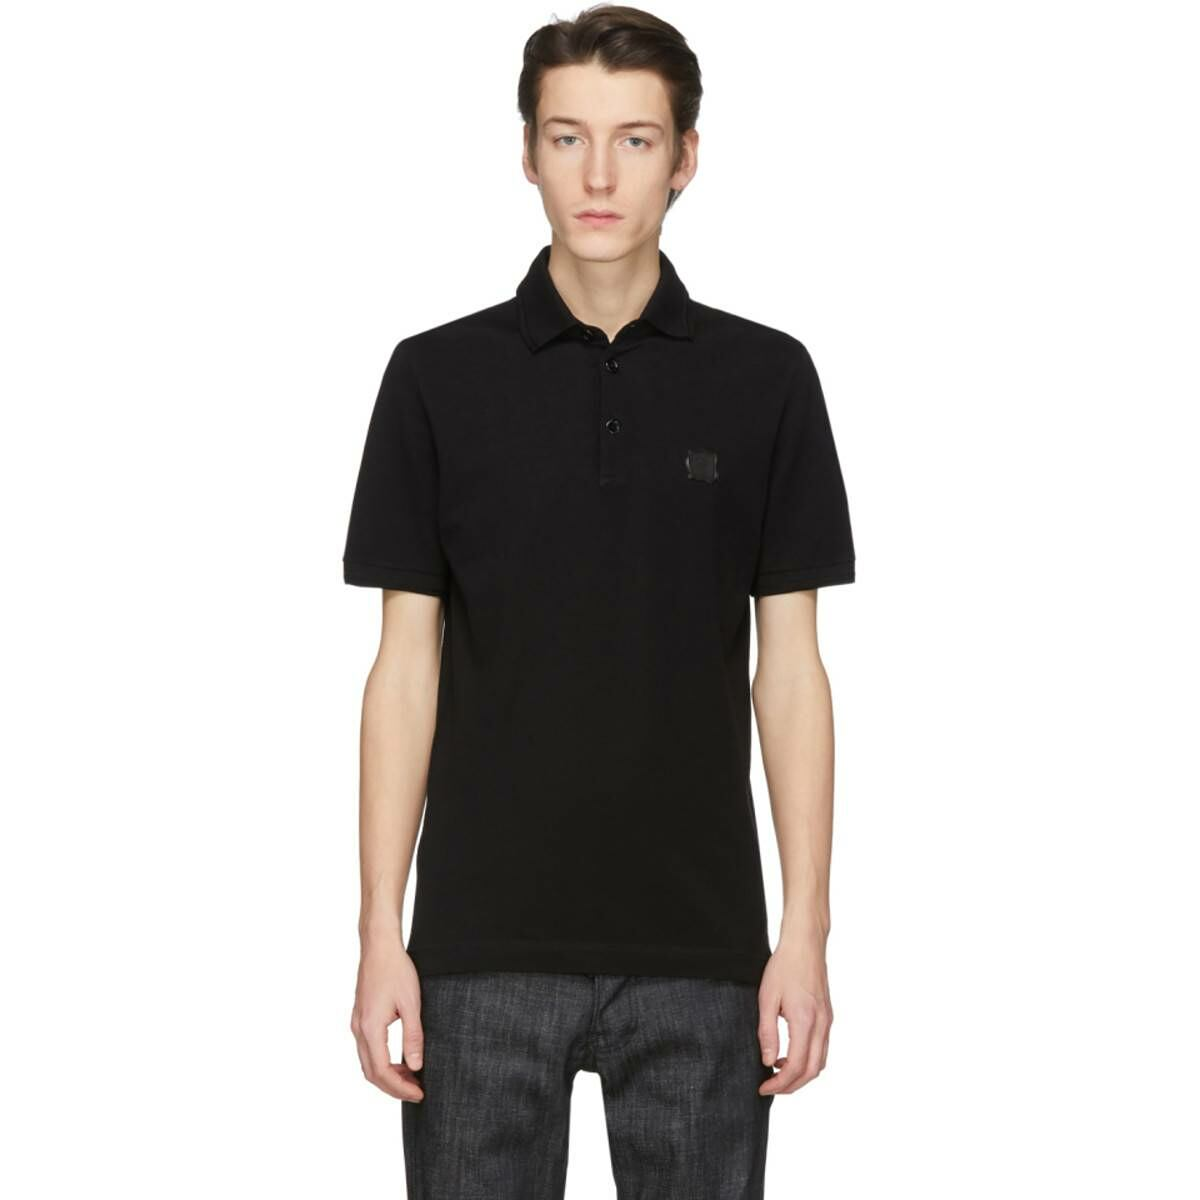 Dolce and Gabbana Black Stamp Polo Ssense USA MEN Men FASHION Mens POLOSHIRTS